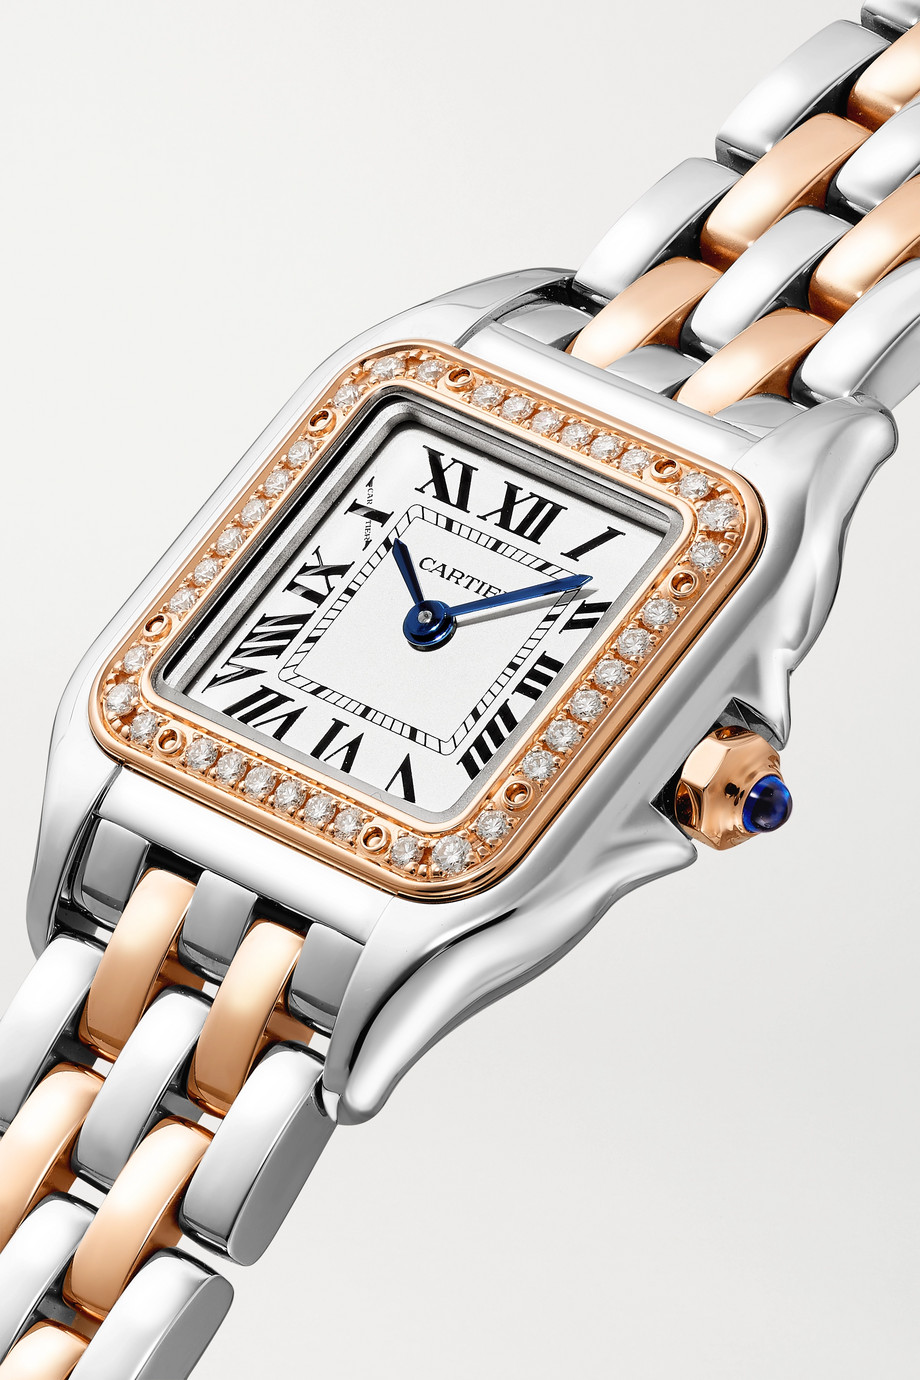 Cartier Panthère de Cartier 22mm small 18-karat rose gold and stainless steel diamond watch